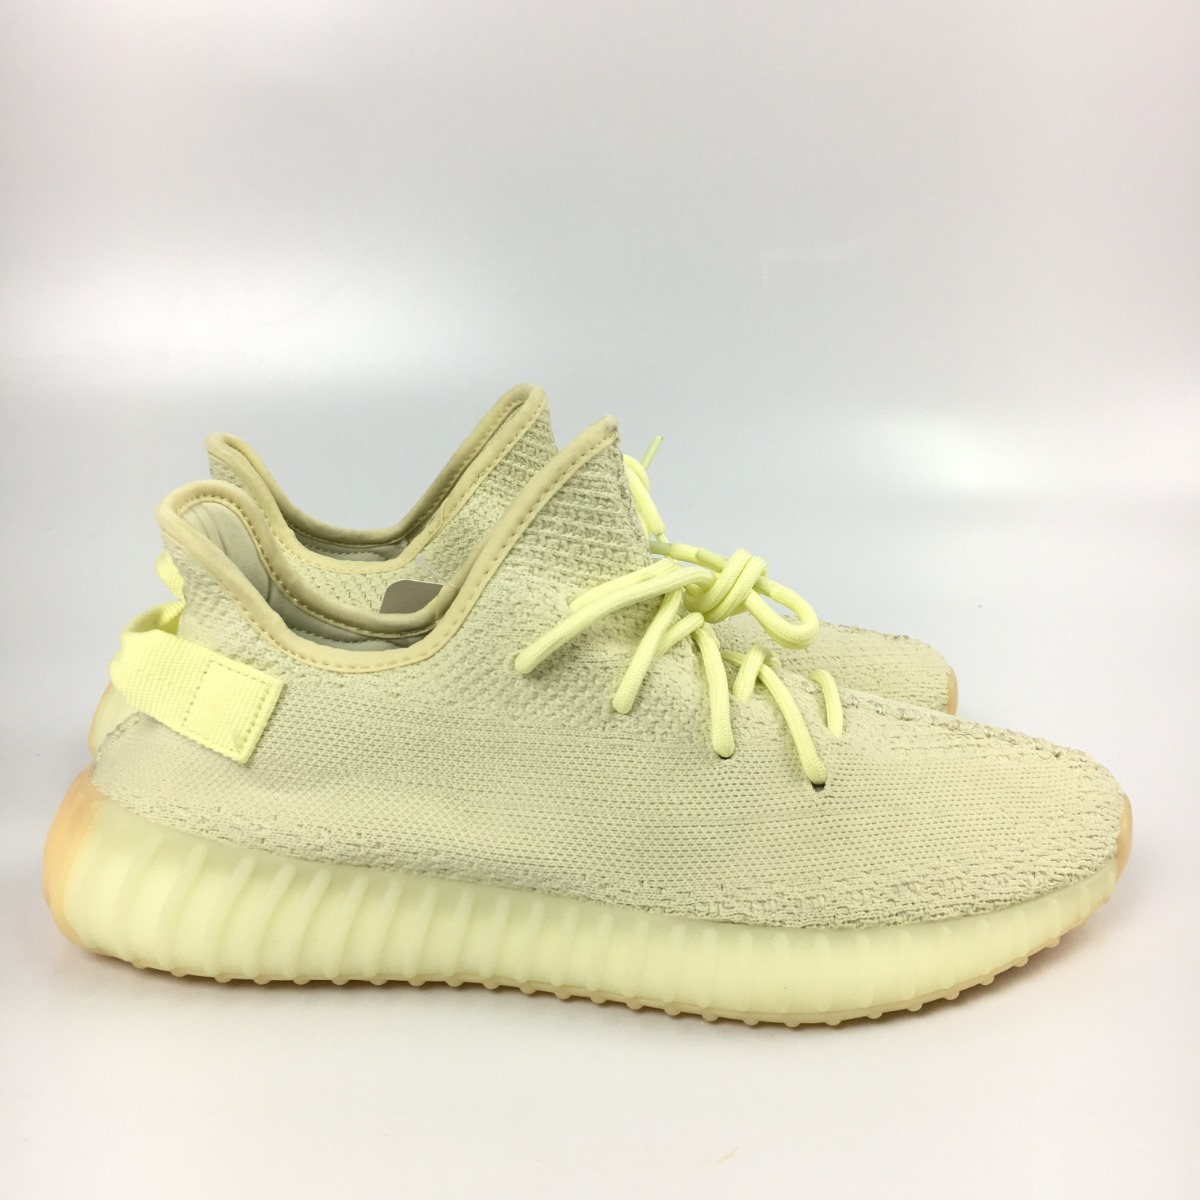 low priced 28df2 25d71 adidas Yeezy Boost 350 V2 Butter